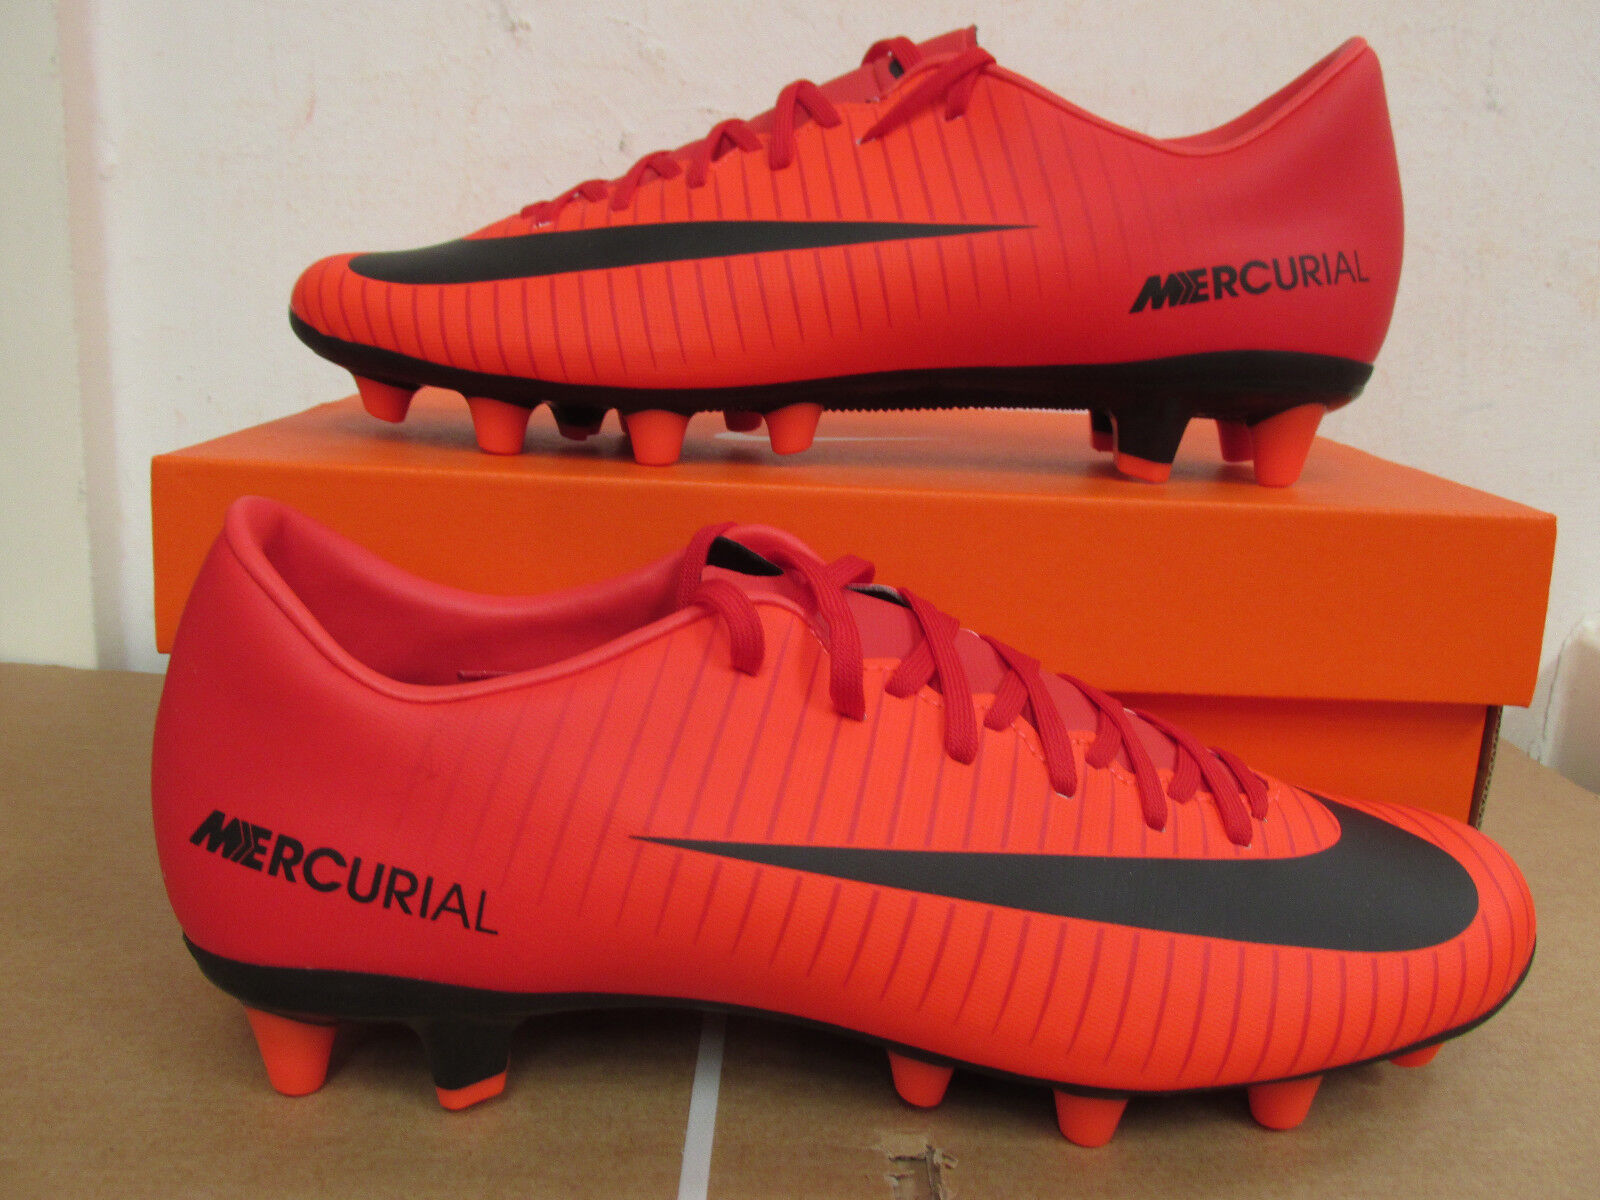 Nike mercurial victory VI AG-PRO mens football boots 831963 616 cleats CLEARANCE